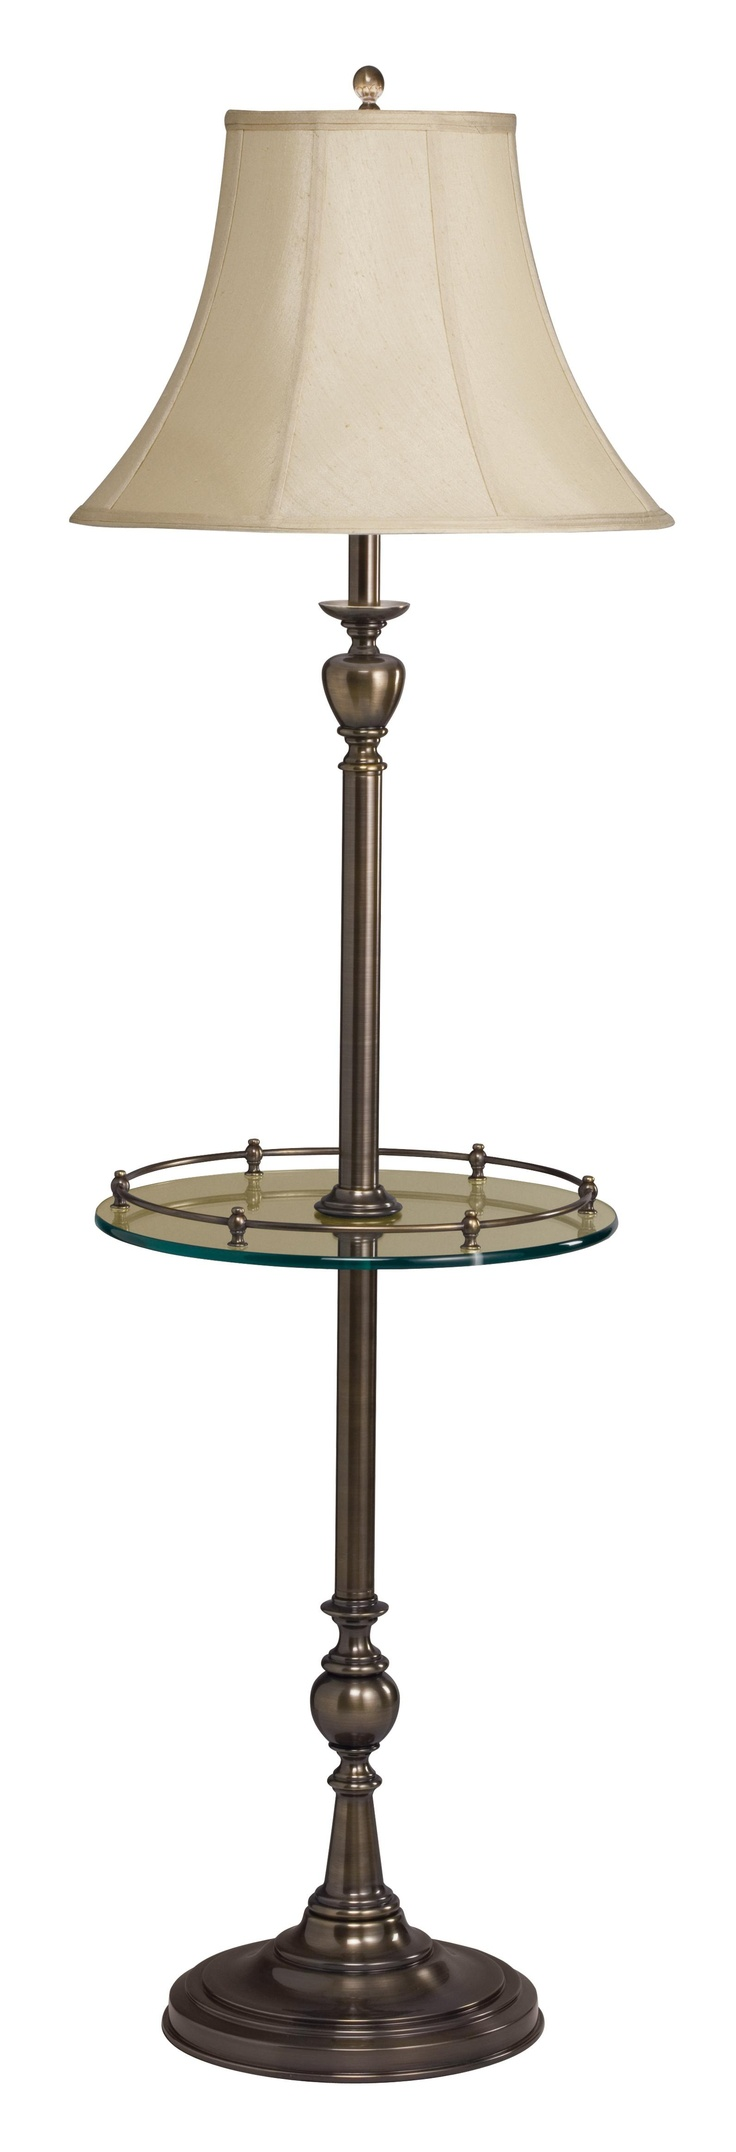 Floor lamp with tray table - New Traditions Patina Brass Tray Table Floor Lamp